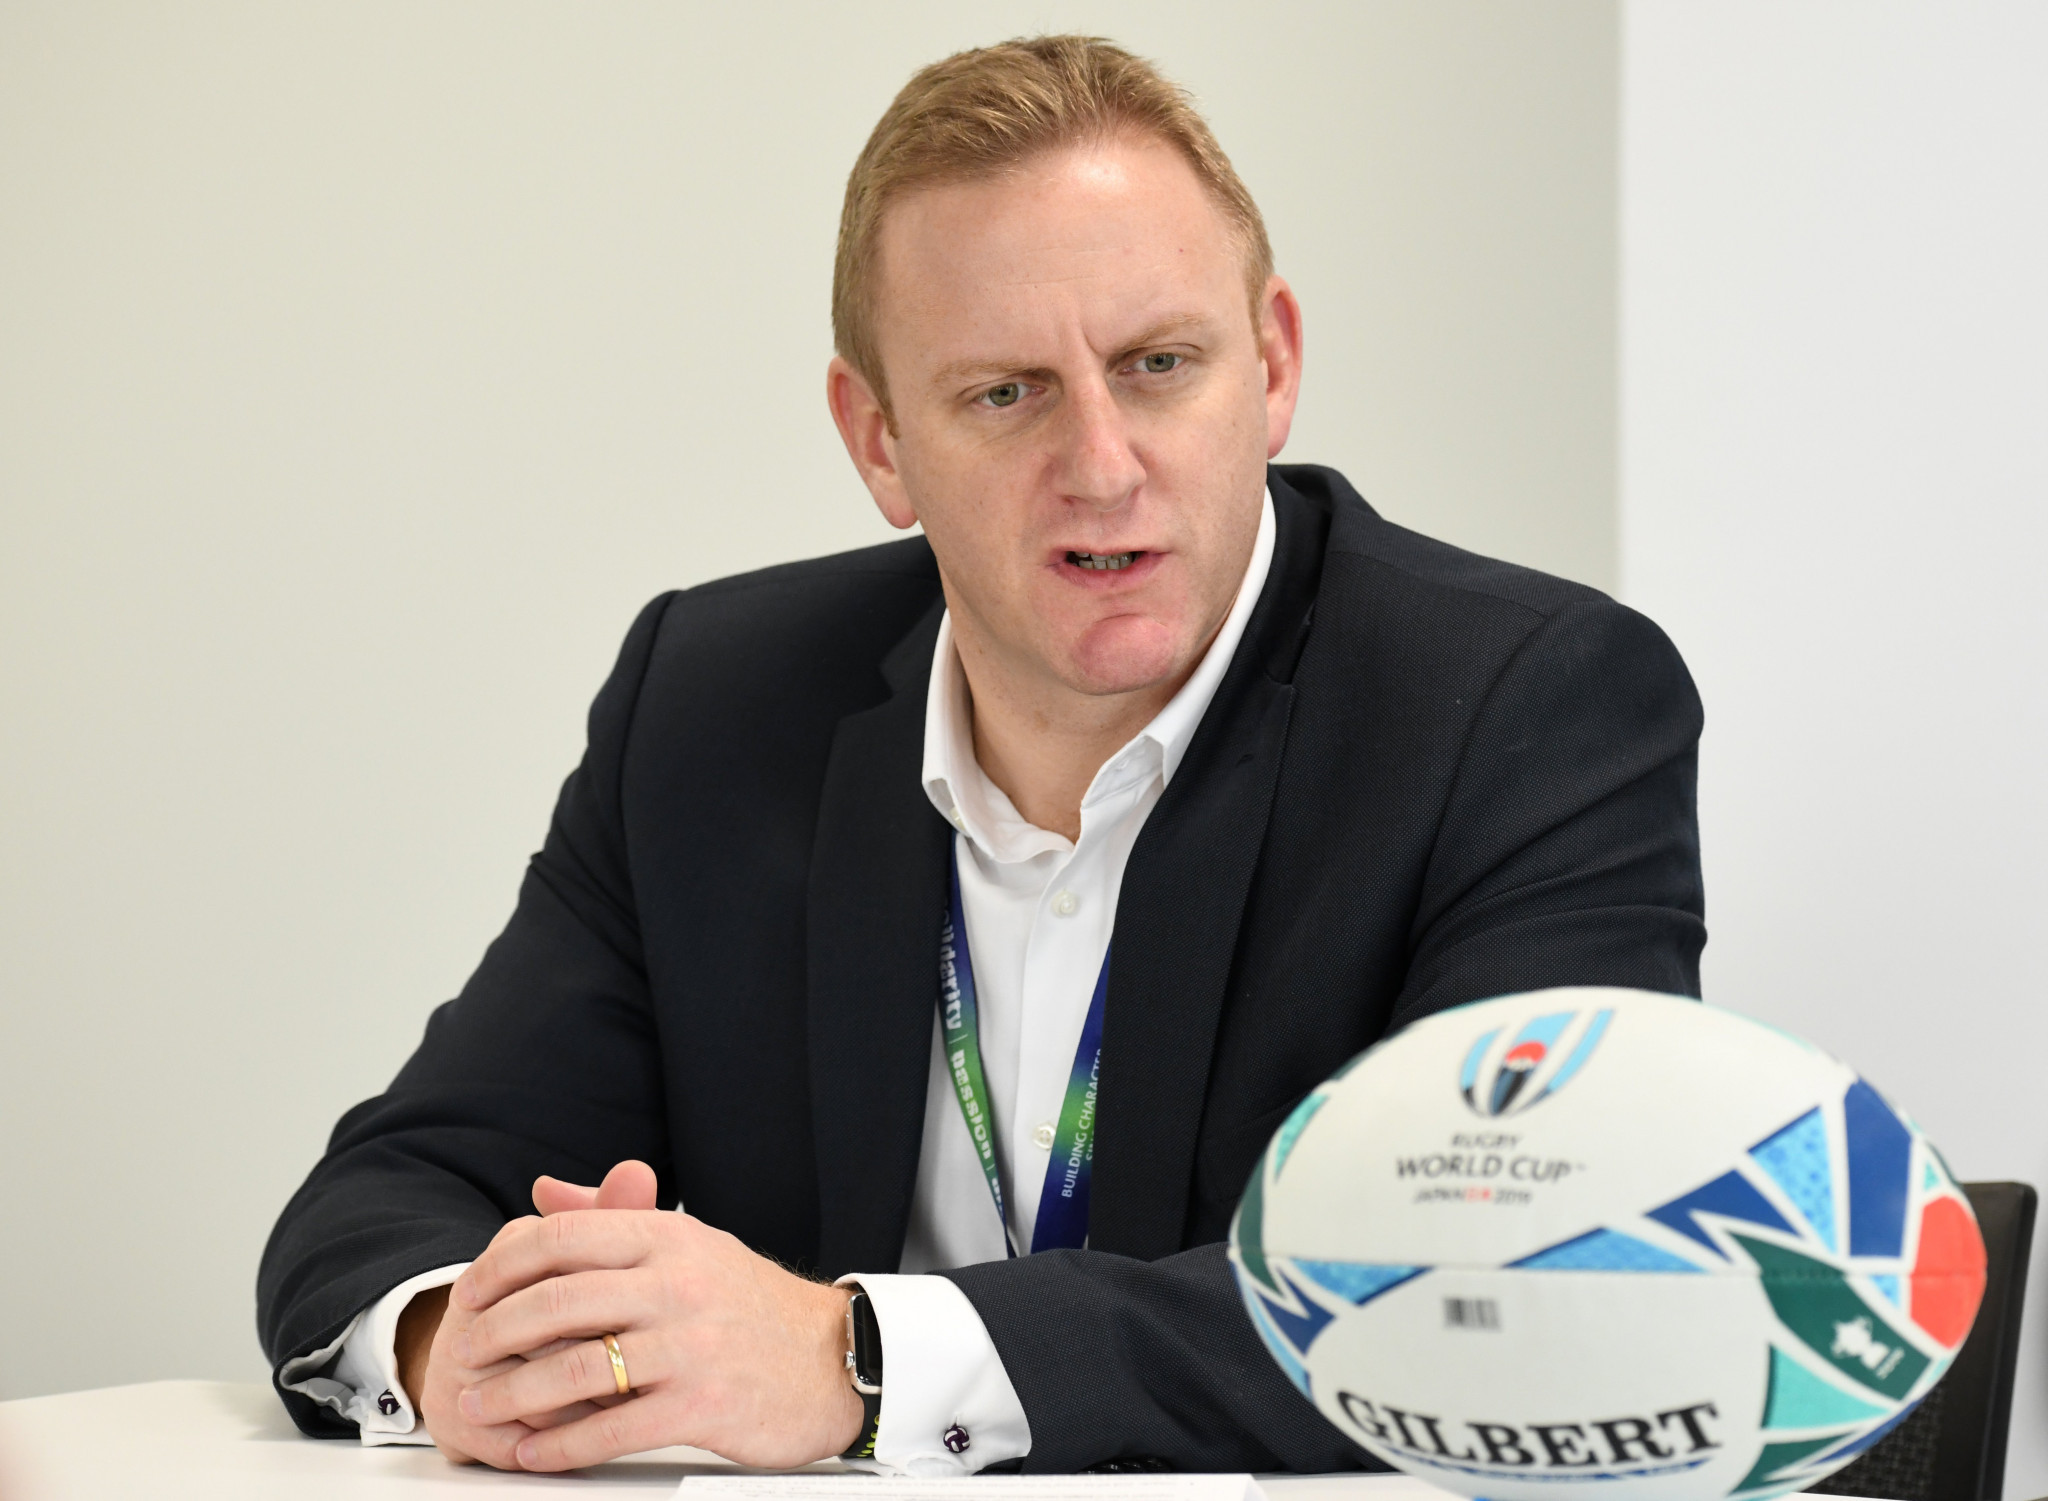 Tournament director of the 2019 Rugby World Cup, Alan Gilpin, commended the organising committee of the tournament for the progress they have made this year ©Getty Images